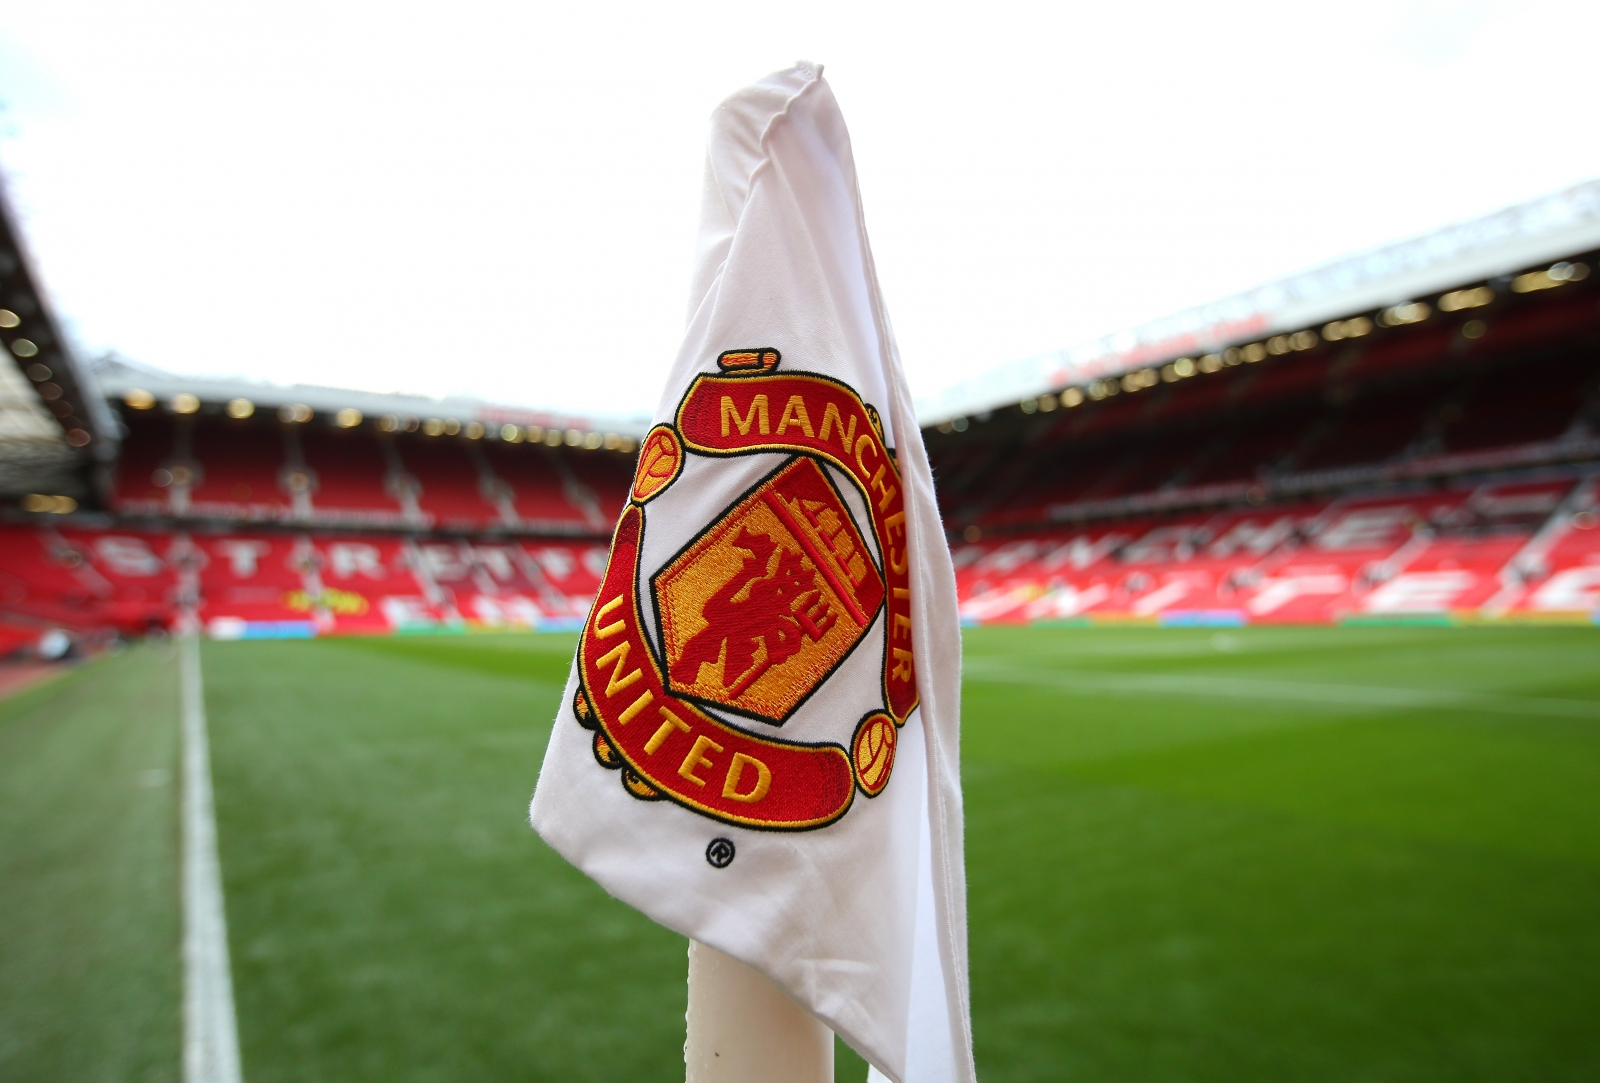 Manchester United on track to deliver record revenue after strong second quarter